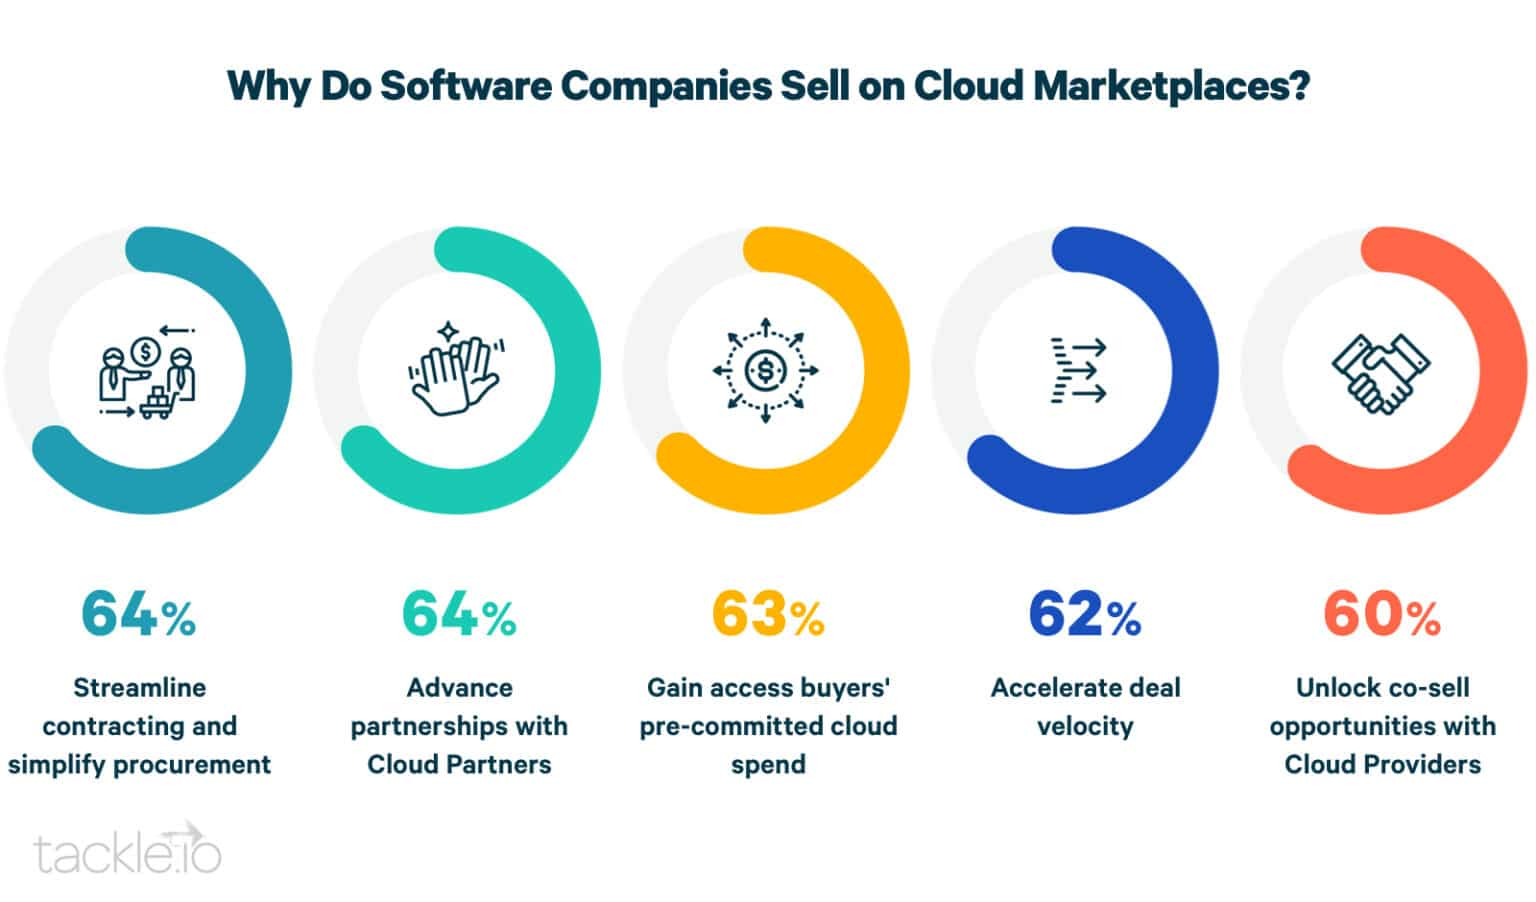 Why companies sell on cloud marketplaces